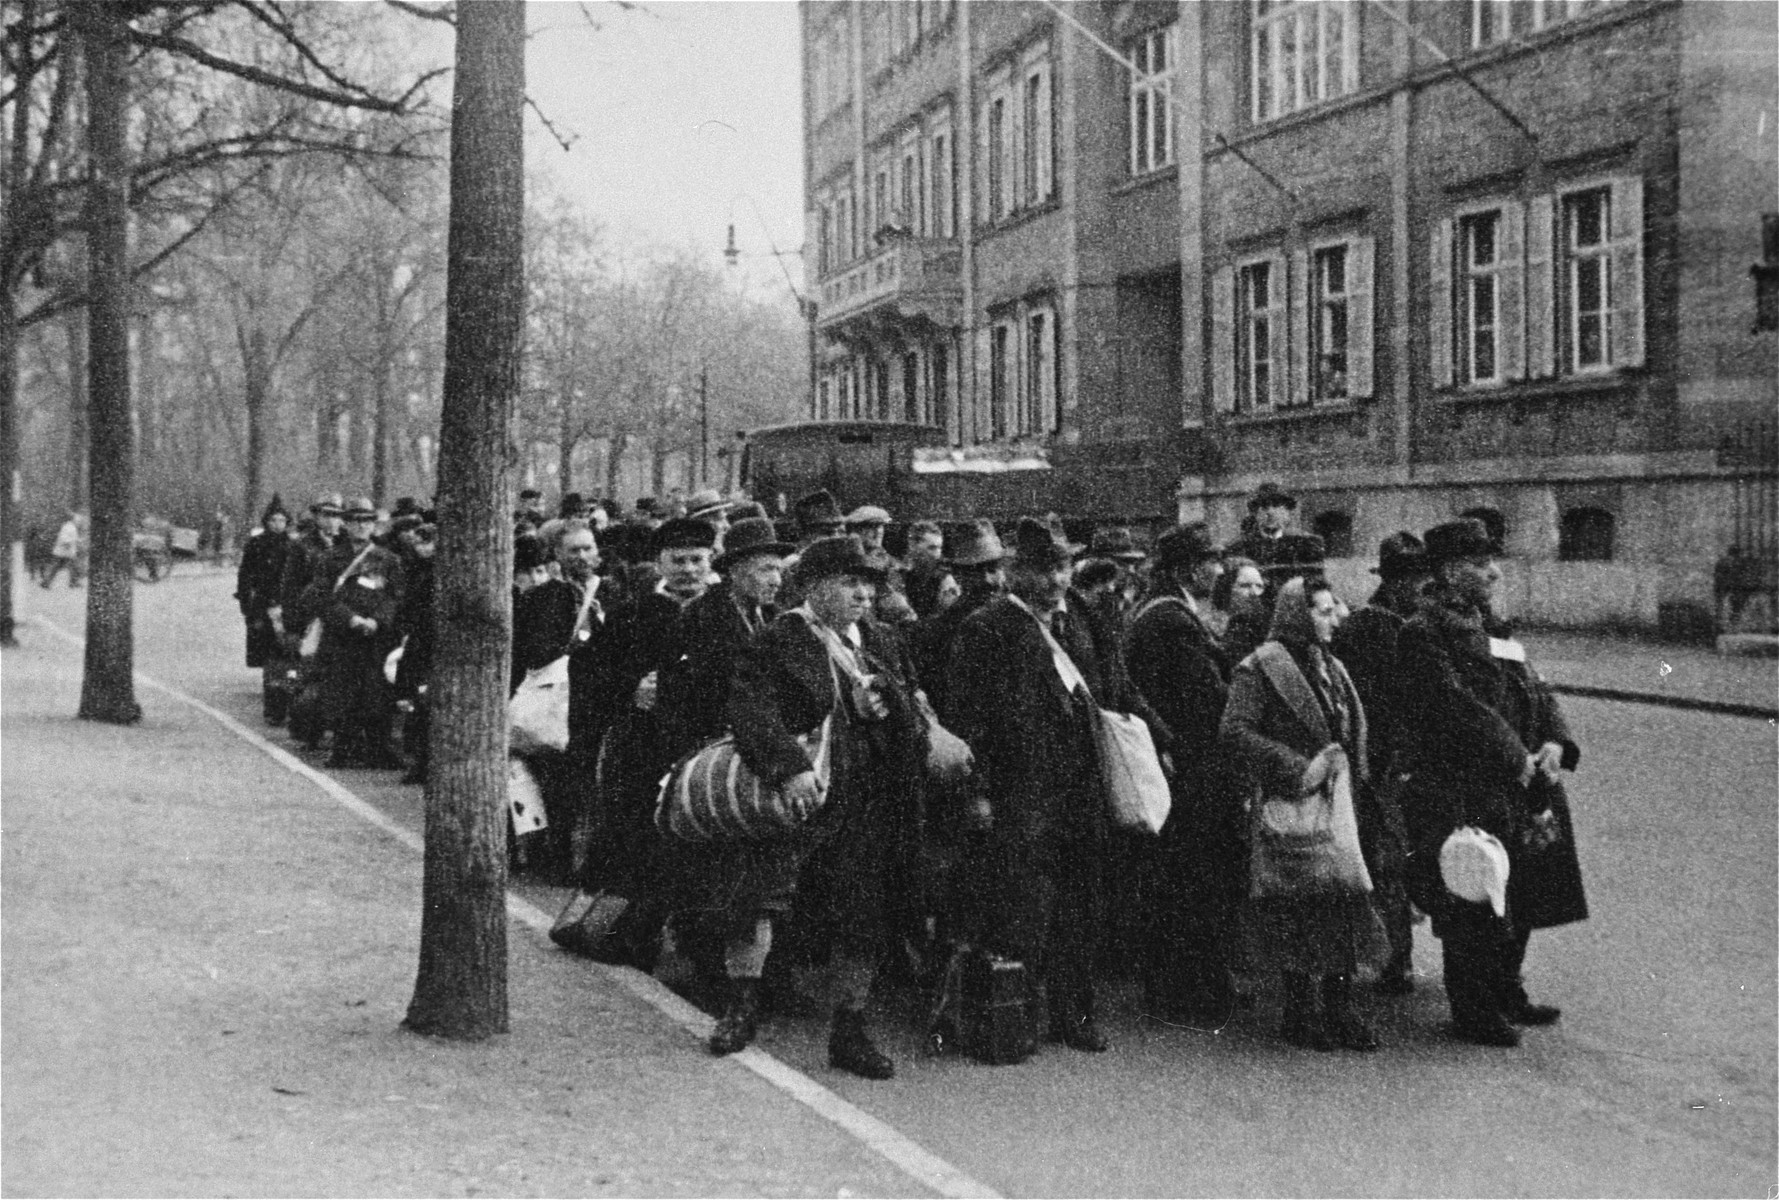 Jewish deportees, carrying a few personal belongings in bundles and suitcases, march through town from the assembly center at the Platzscher Garten to the railroad station.